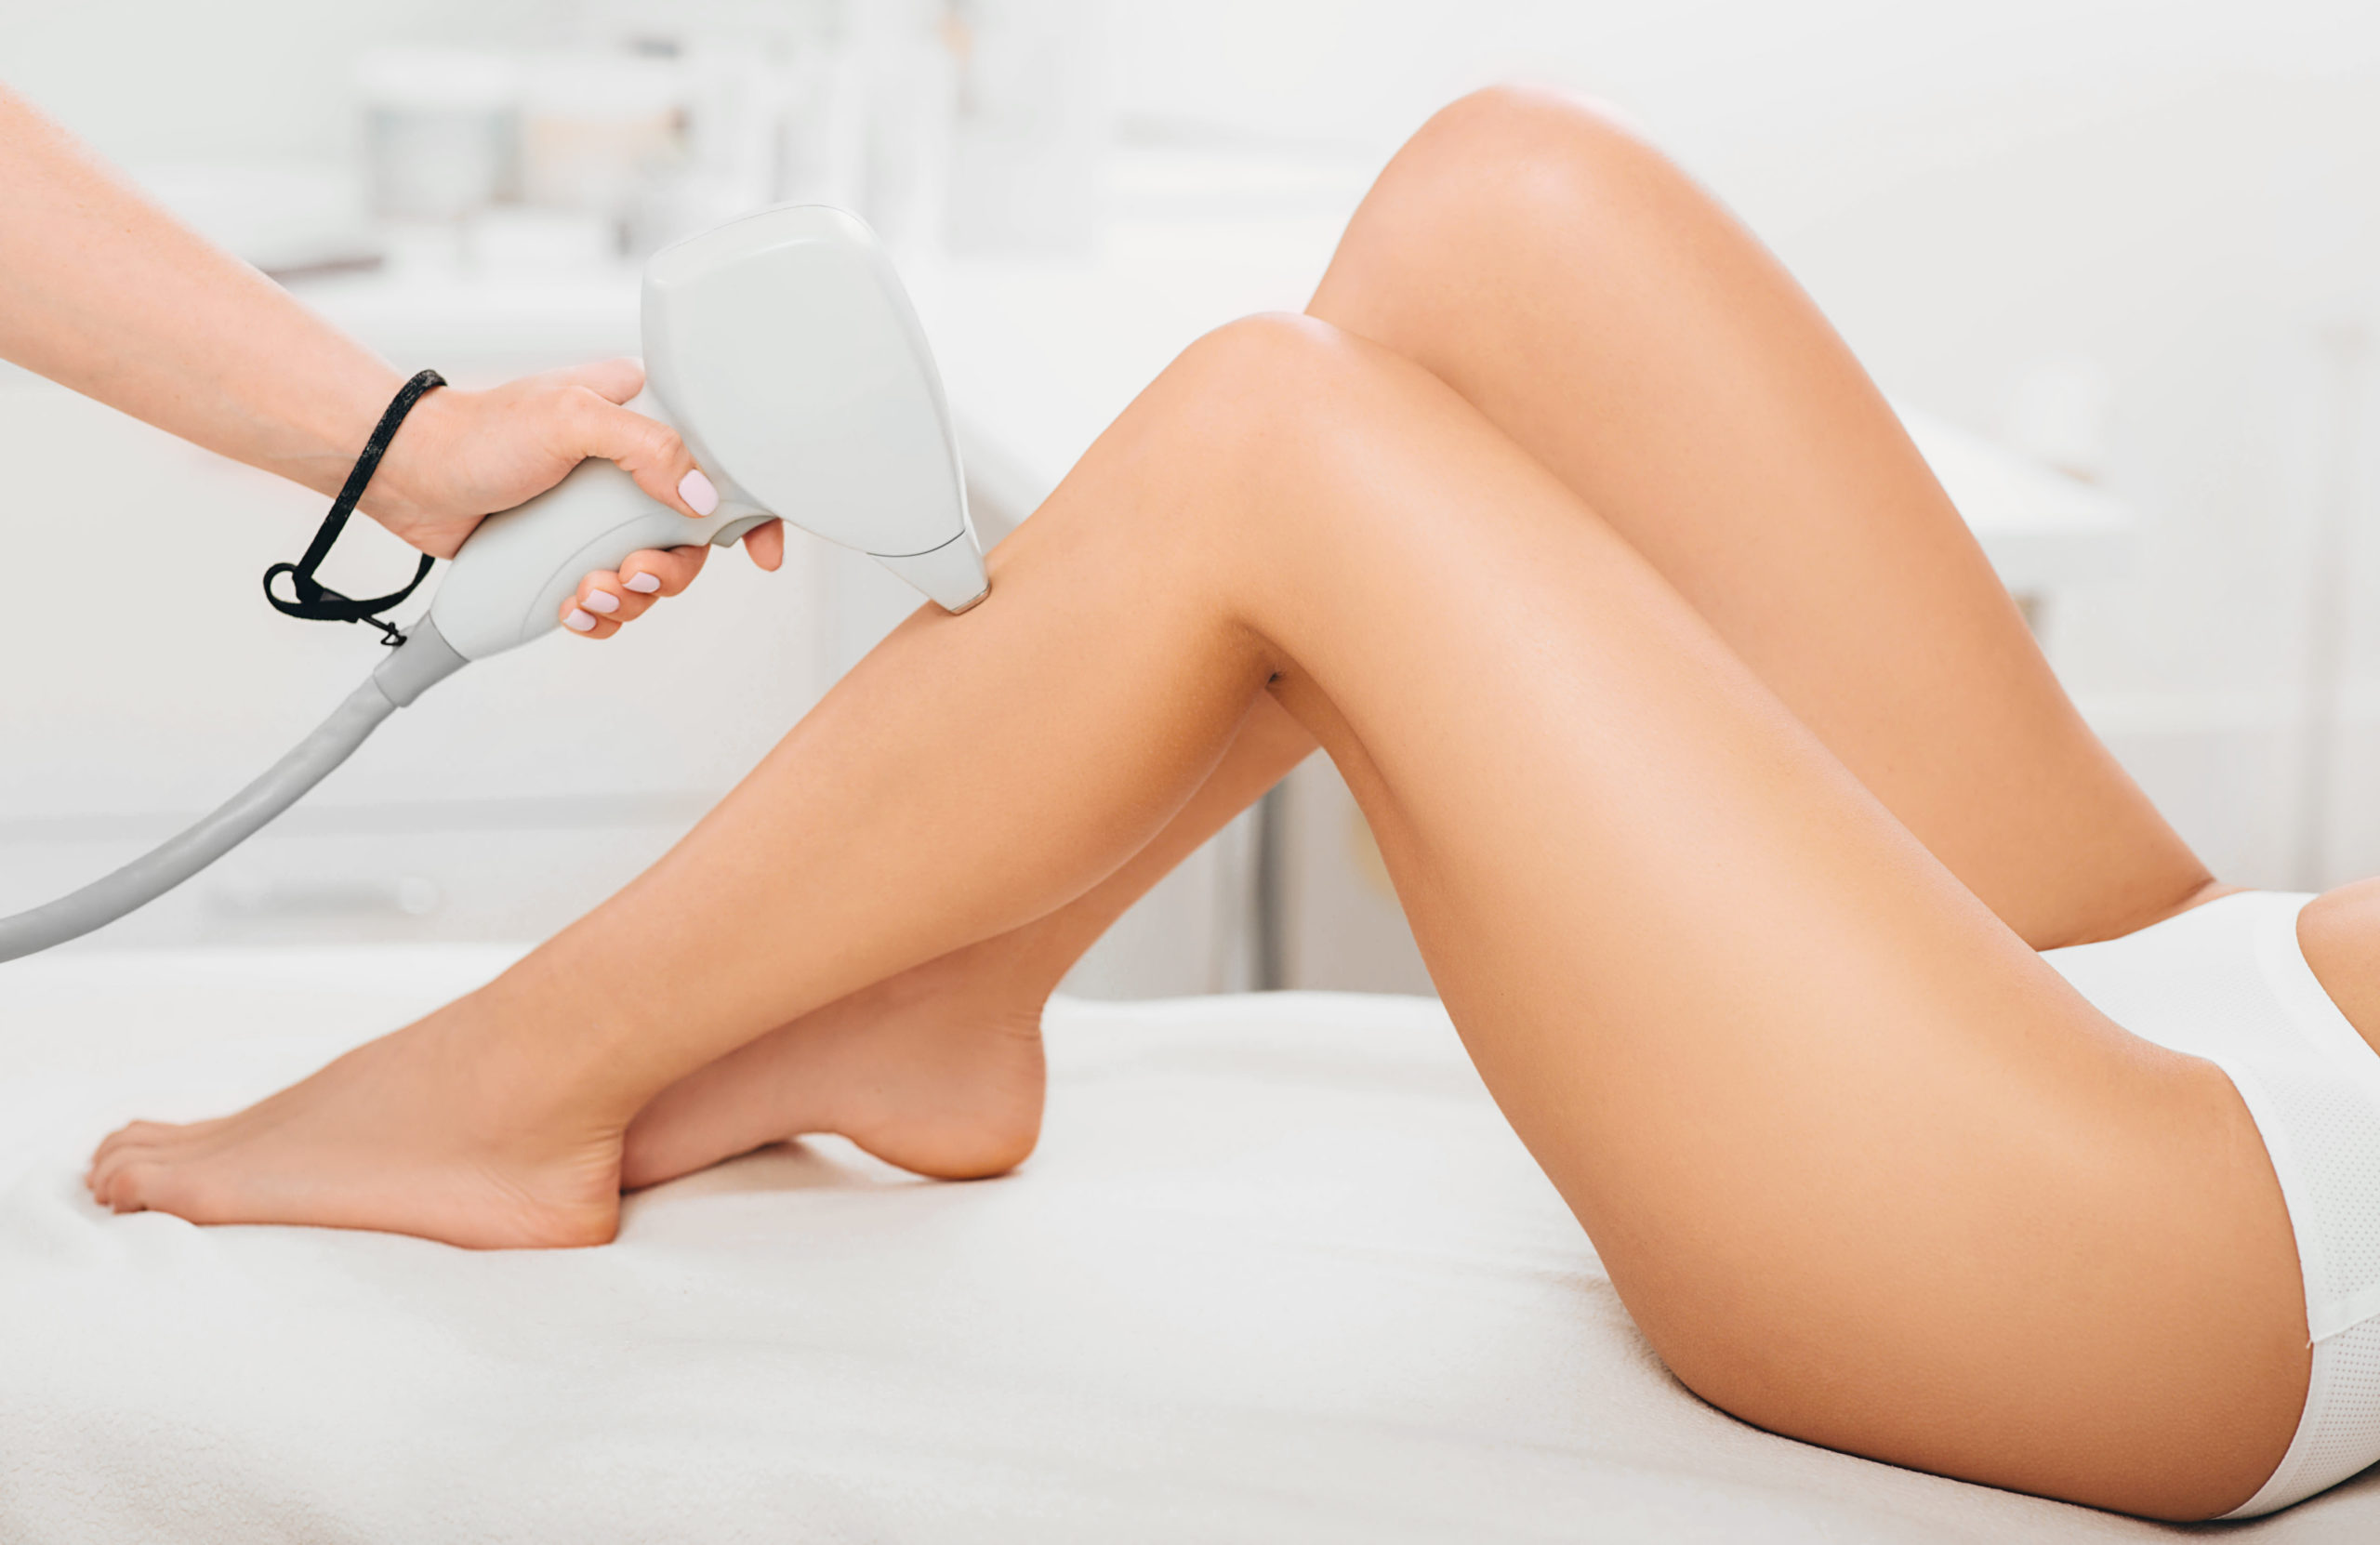 Laser Hair Removal - Full Legs